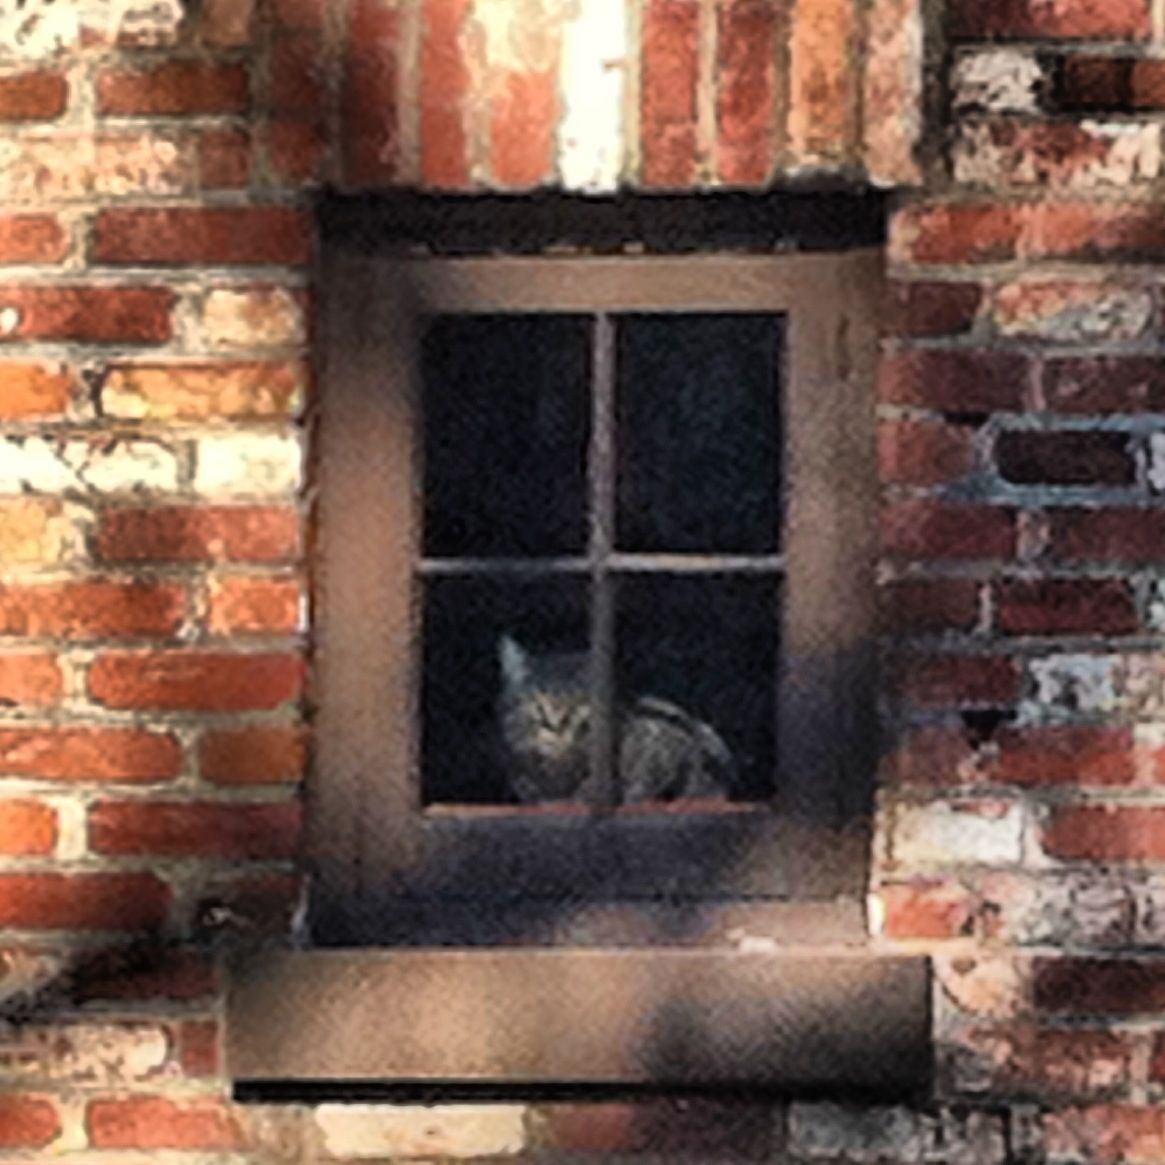 Kitty in the window.